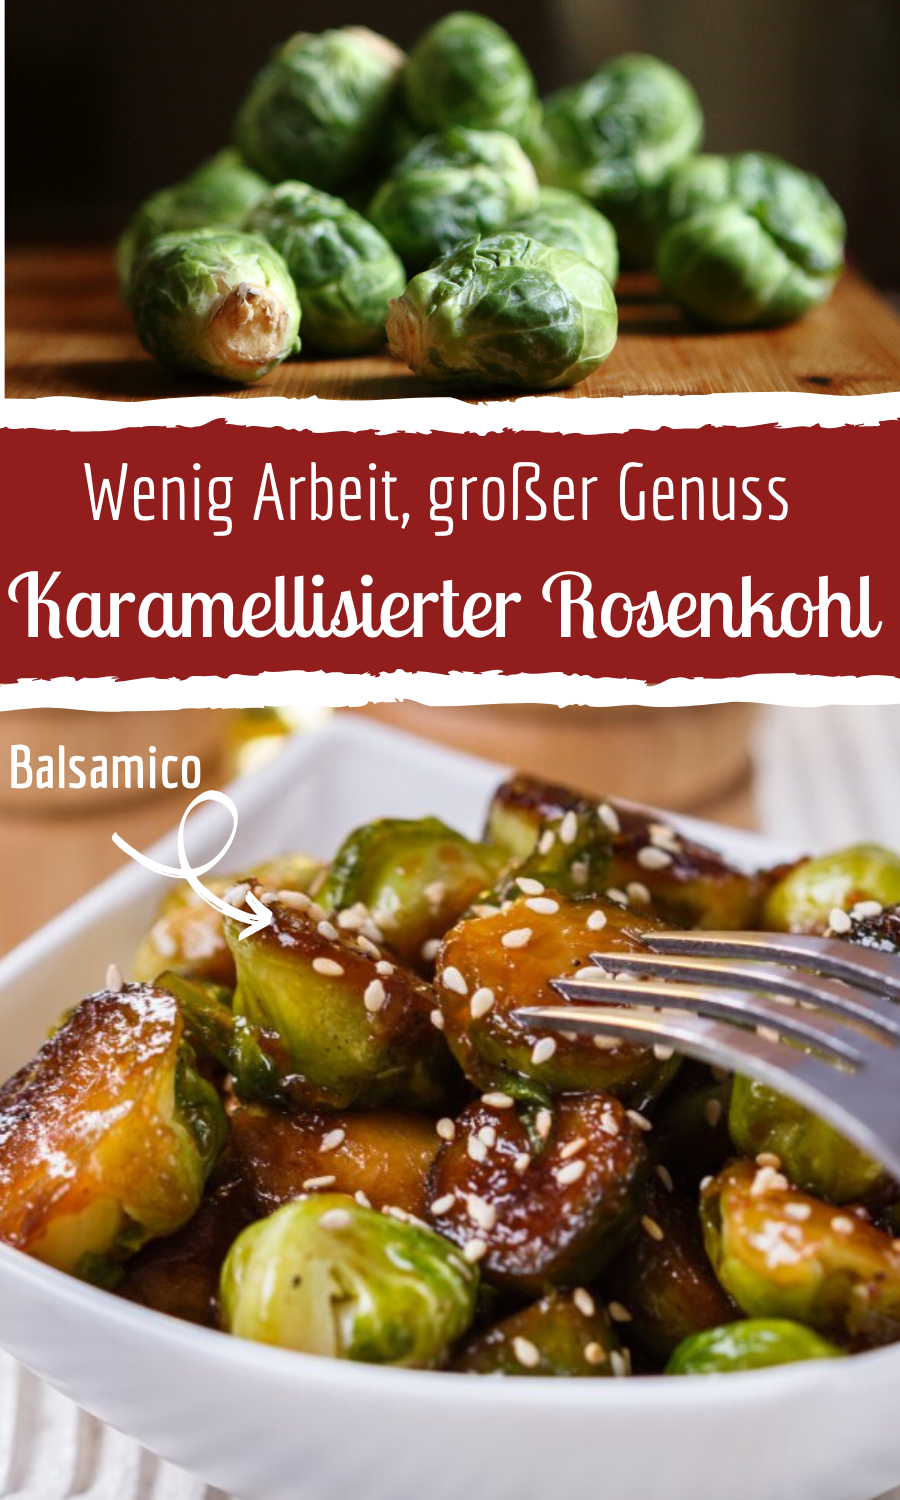 Caramelized Brussels sprouts with honey & balsamic vinegar